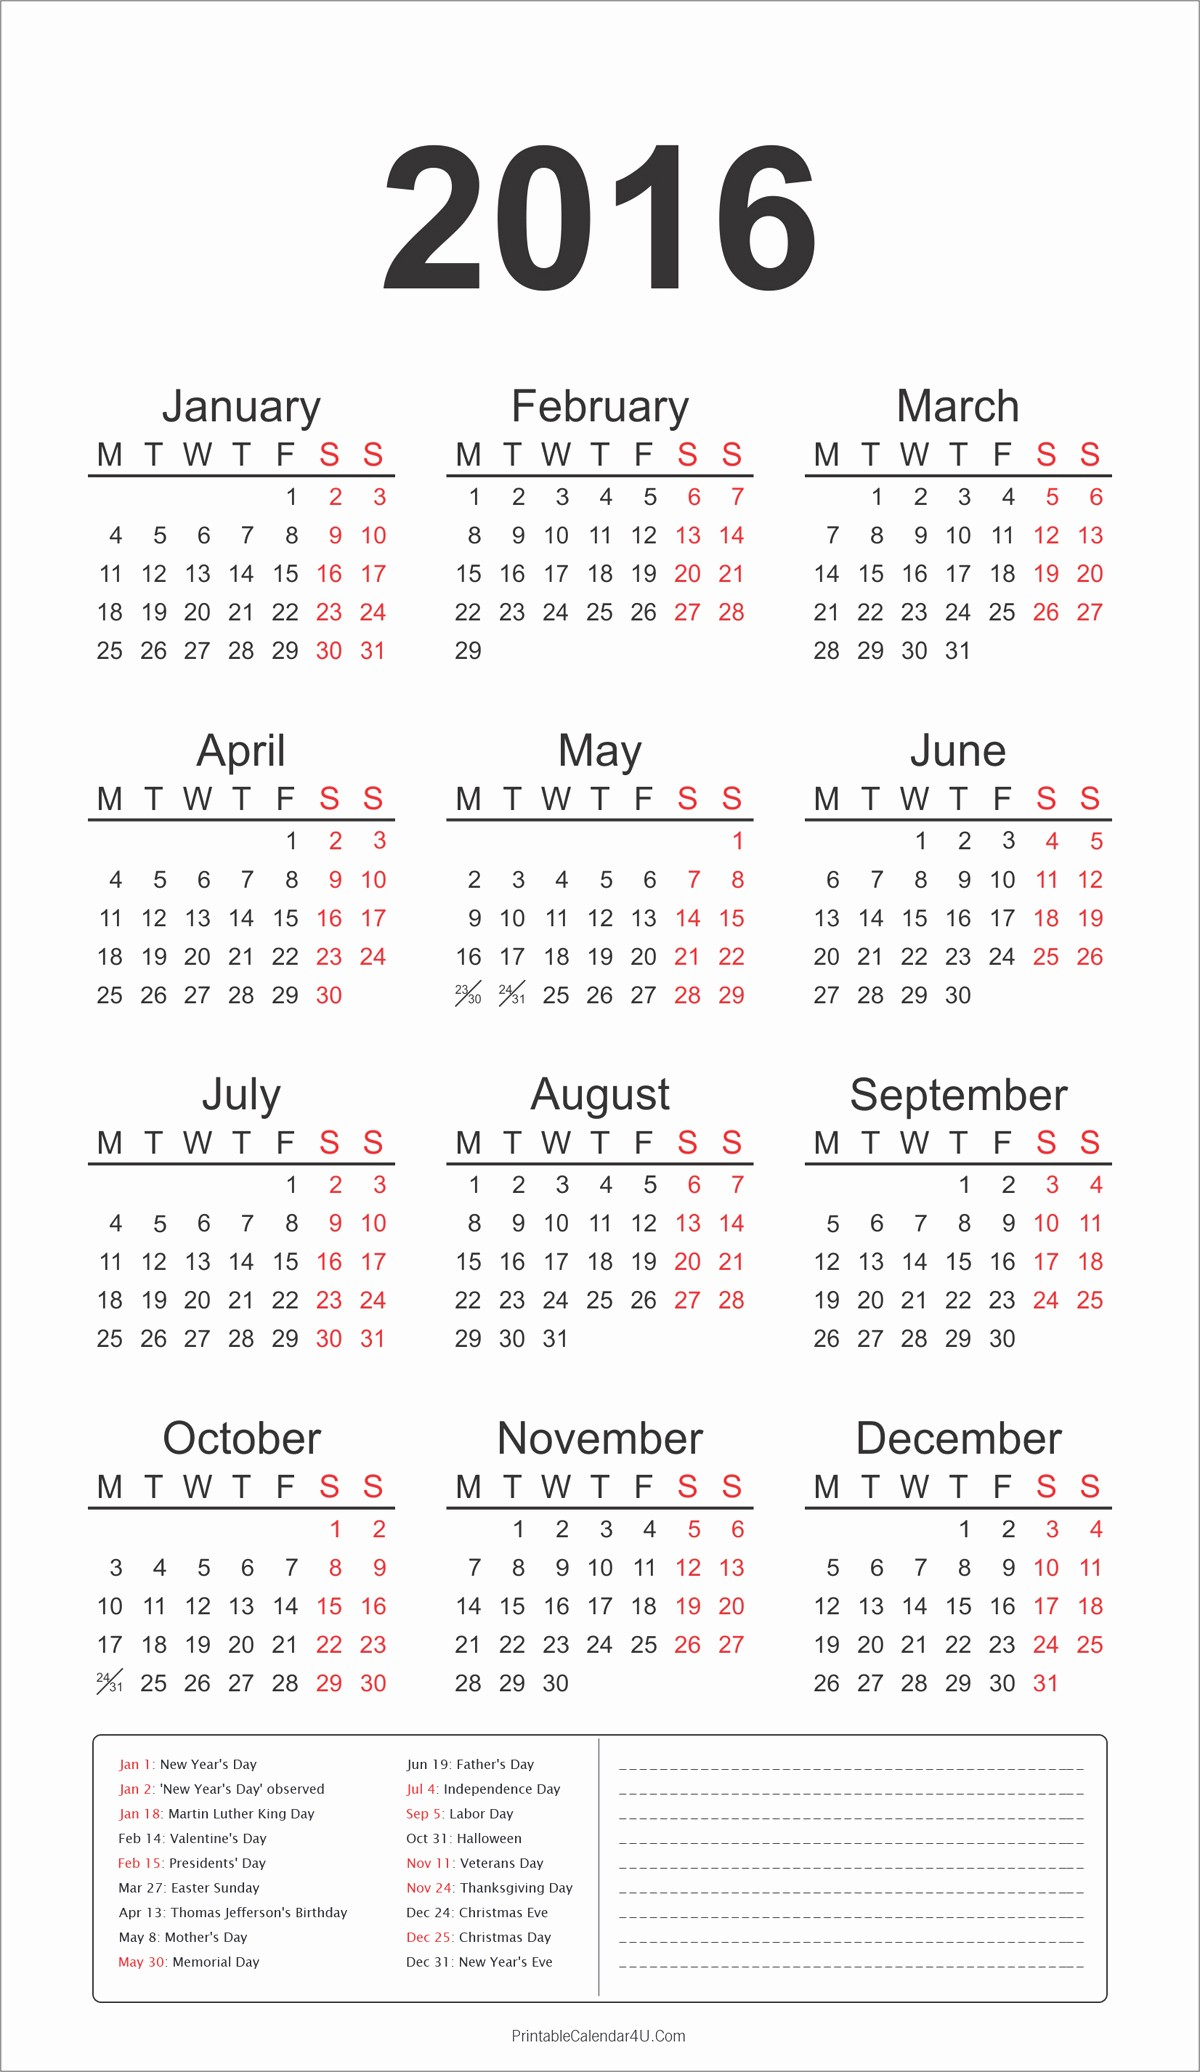 Calendar 2016 Printable with Holidays Lovely 2016 Yearly Calendar with Holidays and Notes